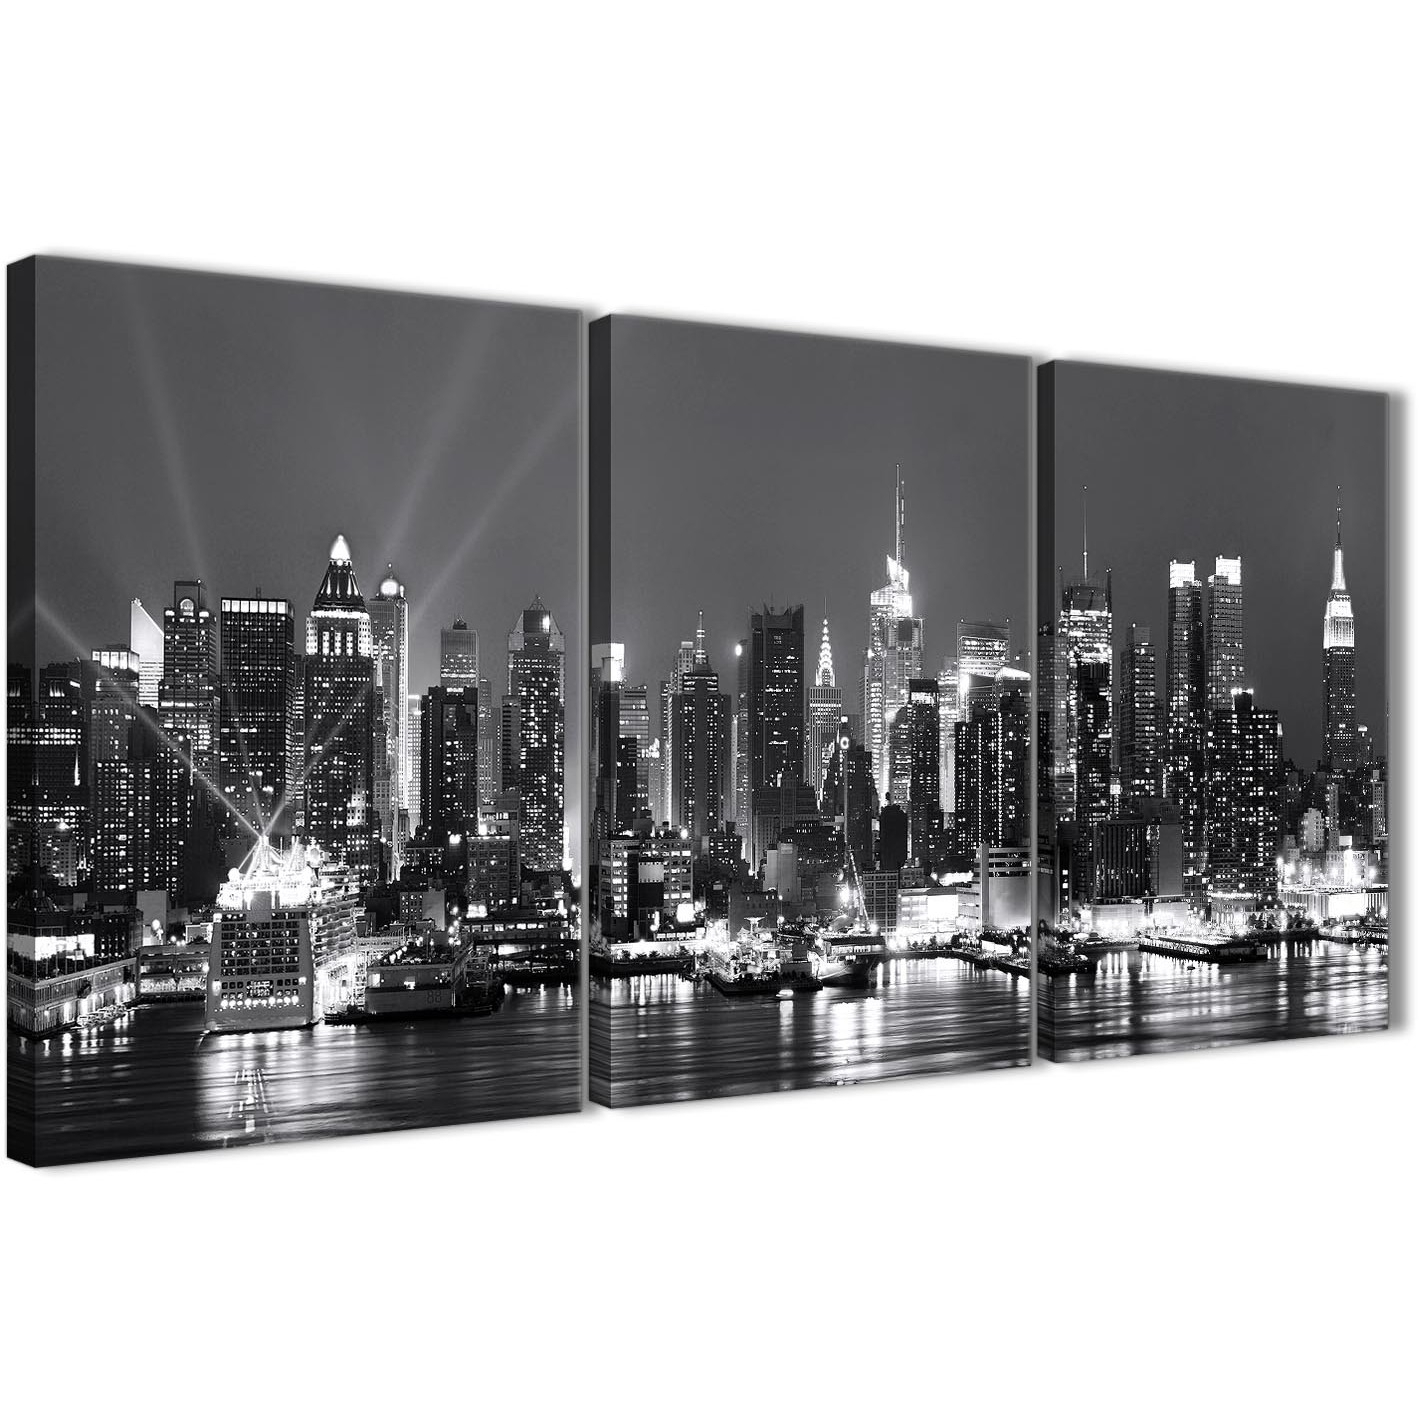 3 Piece Landscape Canvas Wall Art New York Hudson River Skyline With New York Canvas Wall Art (View 15 of 20)